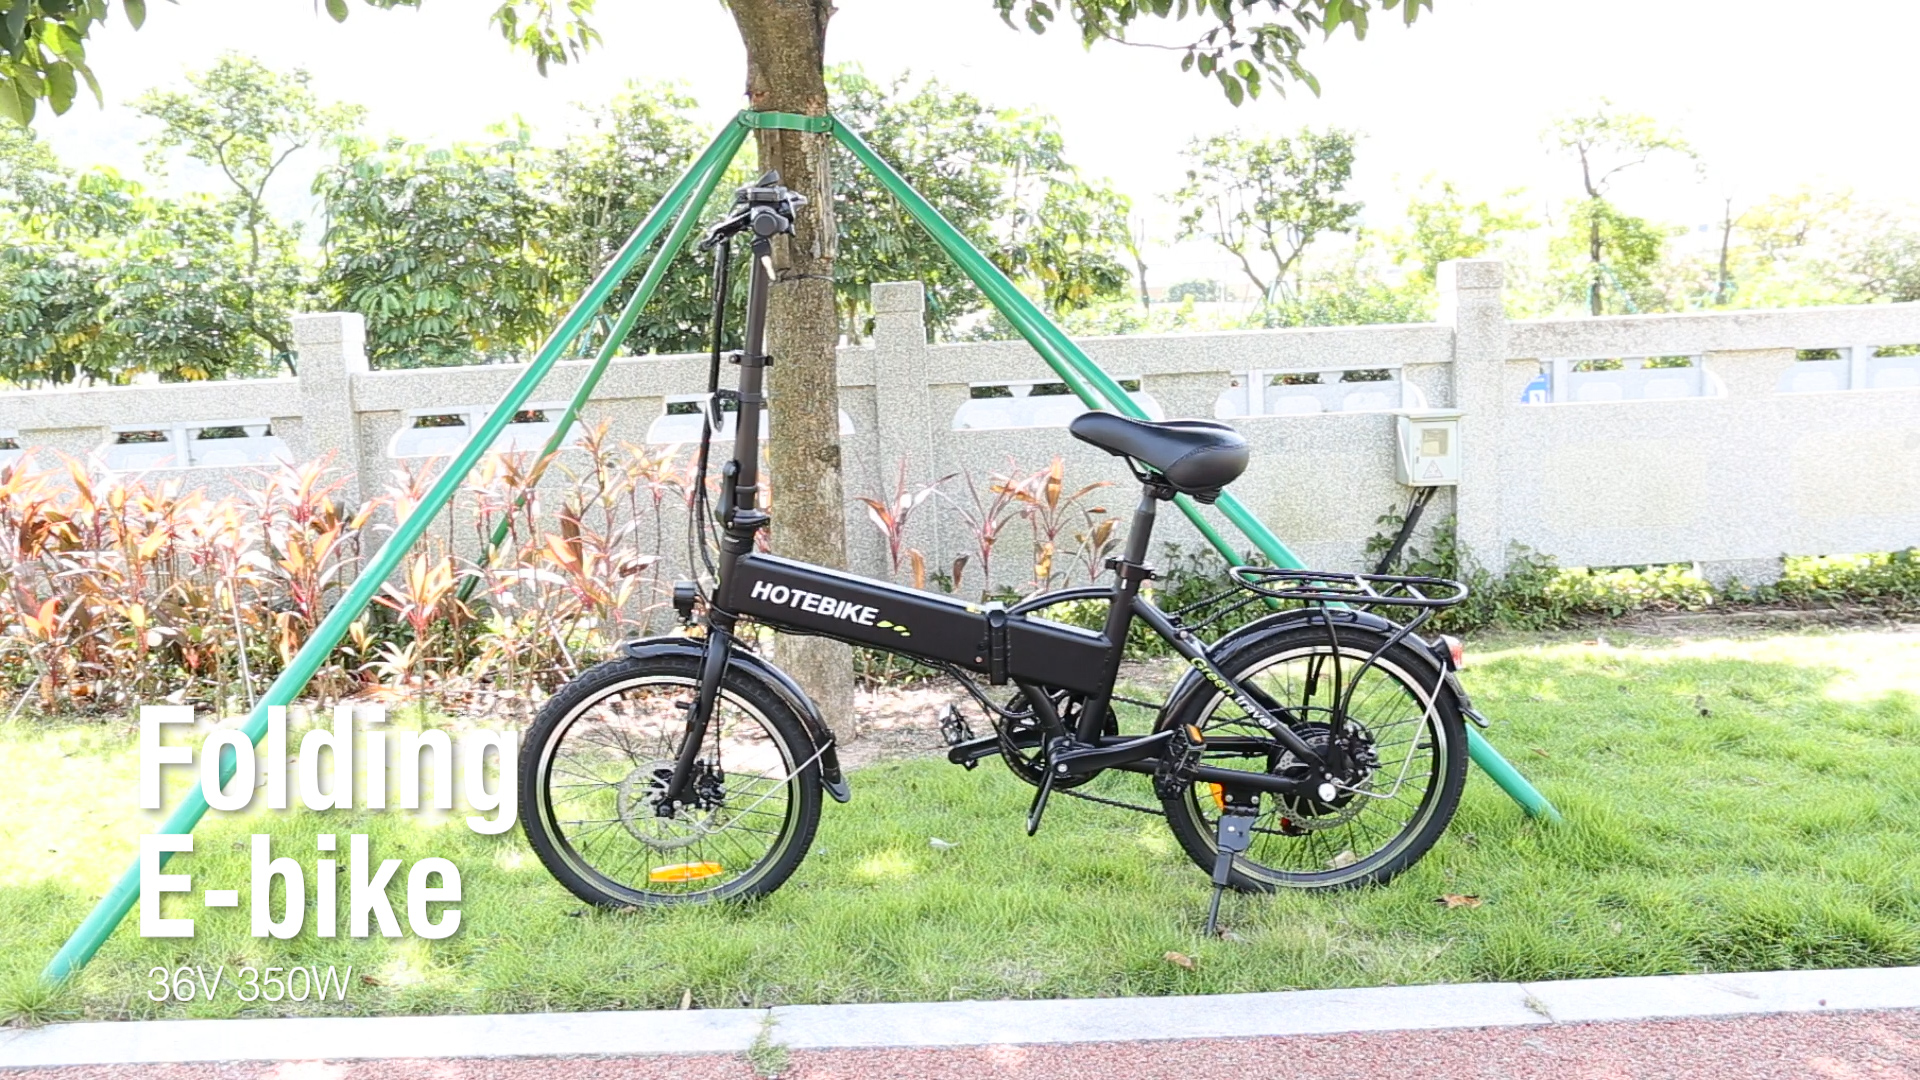 20 inch Folding Electric Bike Mini Bicycle A1-7